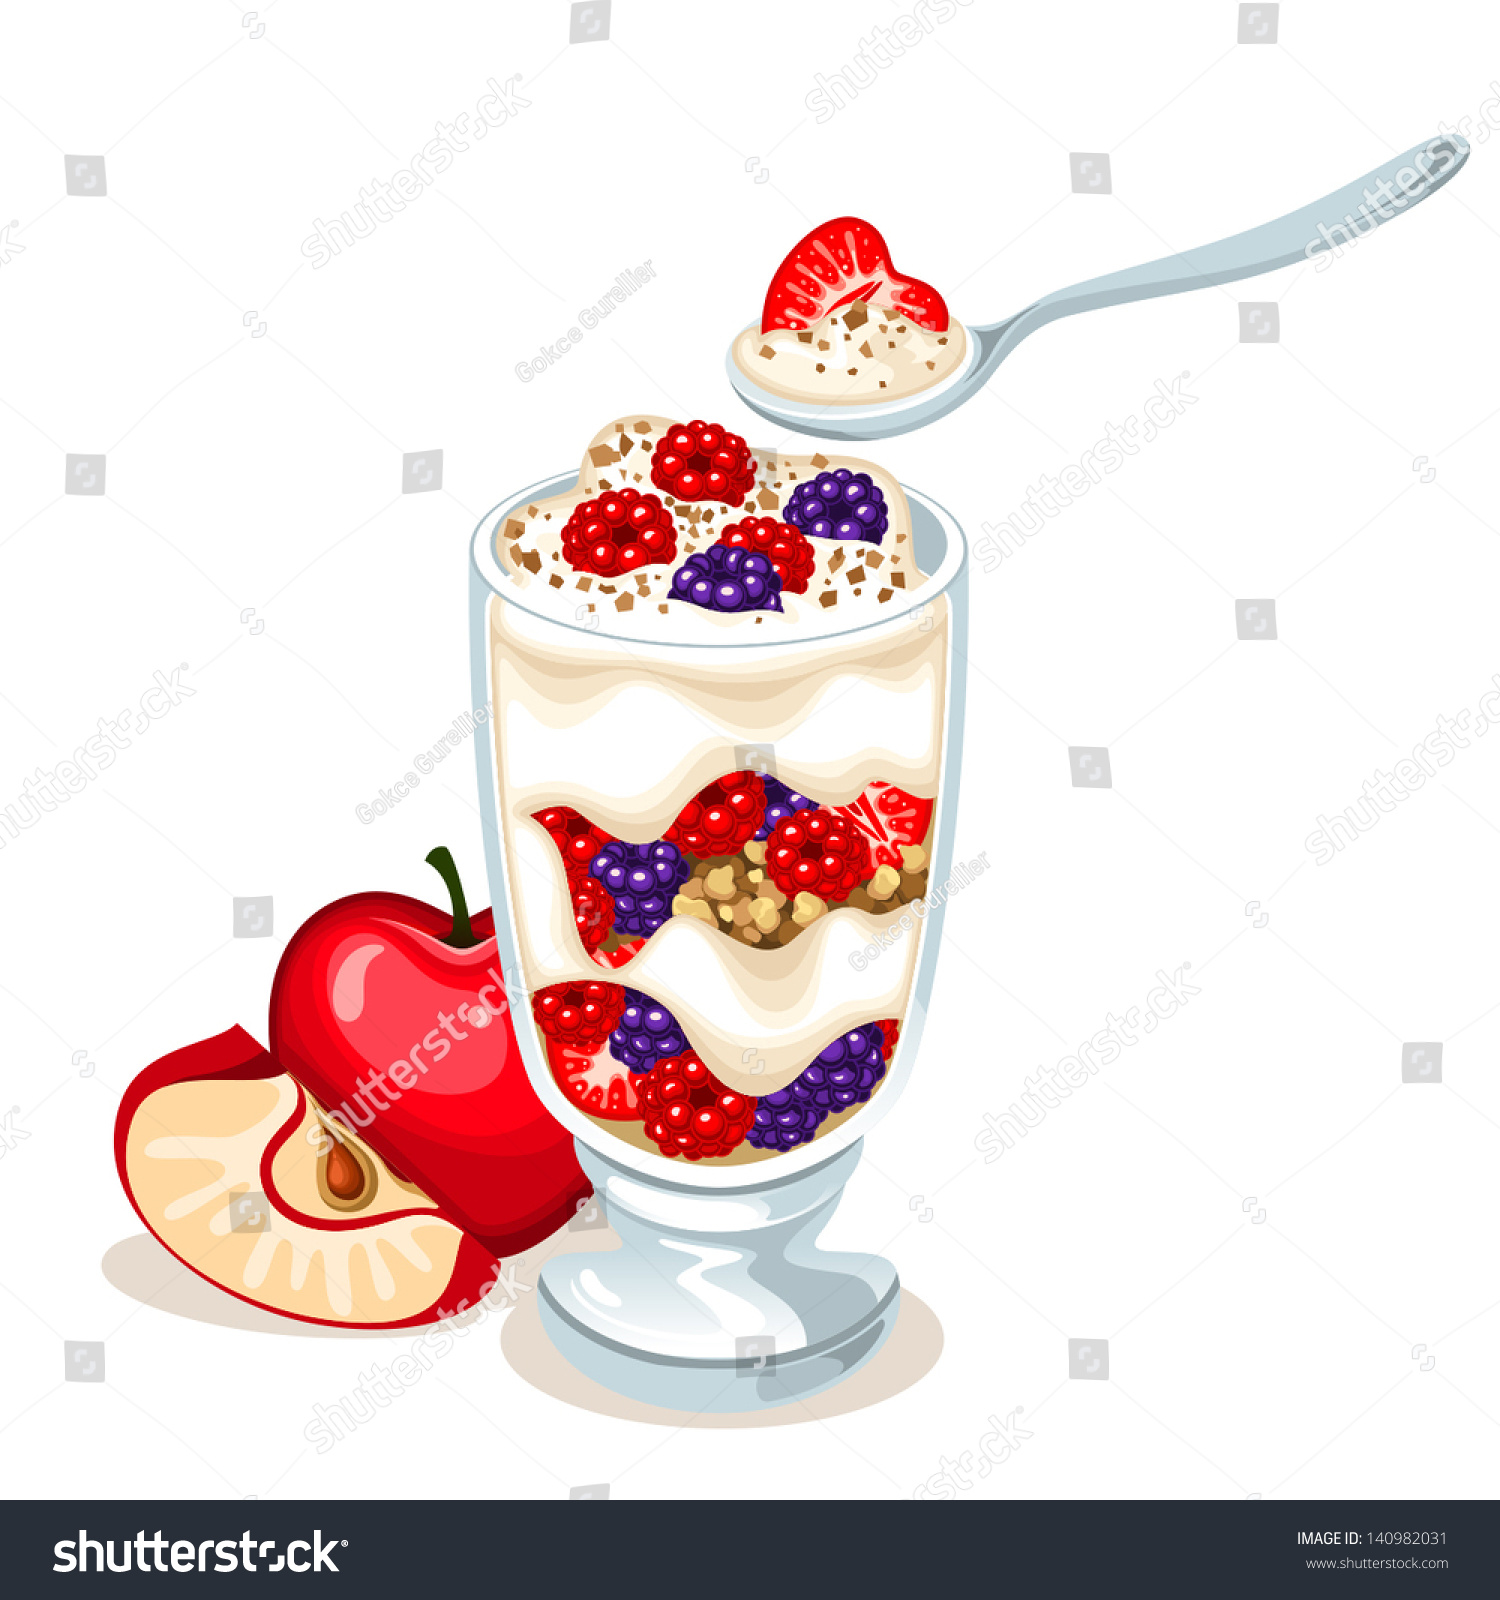 vector fruit parfait stock vector 140982031   shutterstock